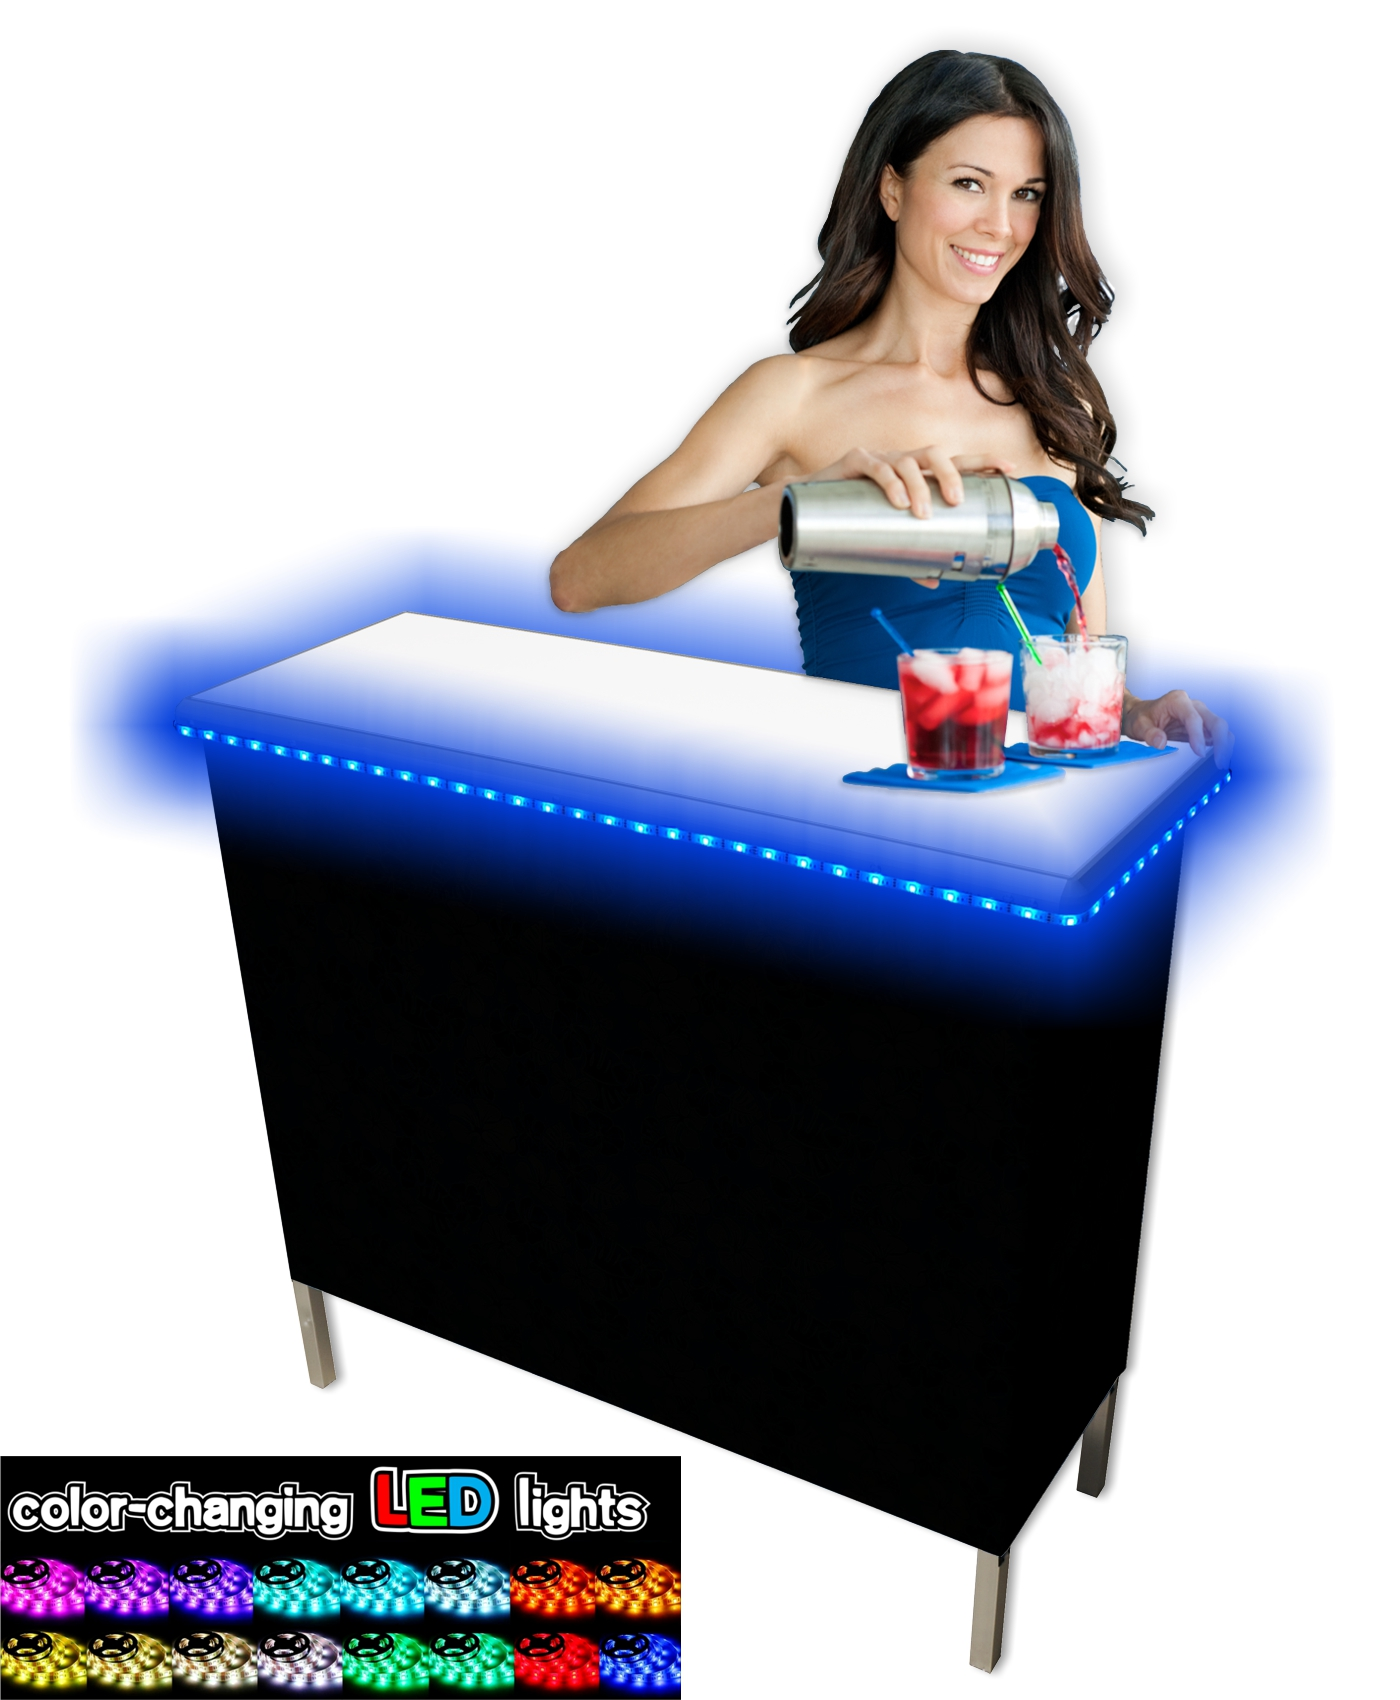 portable party bar - The Party Bar Portable Bar is a must-have at any party, tailgate, or event where drinks are to be enjoyed. The Portable Party Bar comes with a nylon carrying case with shoulder straps for convenient portability and also keeps your Party Bar protected while in storage. Color-Changing LED Glow Lights add an awesome lighting effect to your Portable Party Bar.